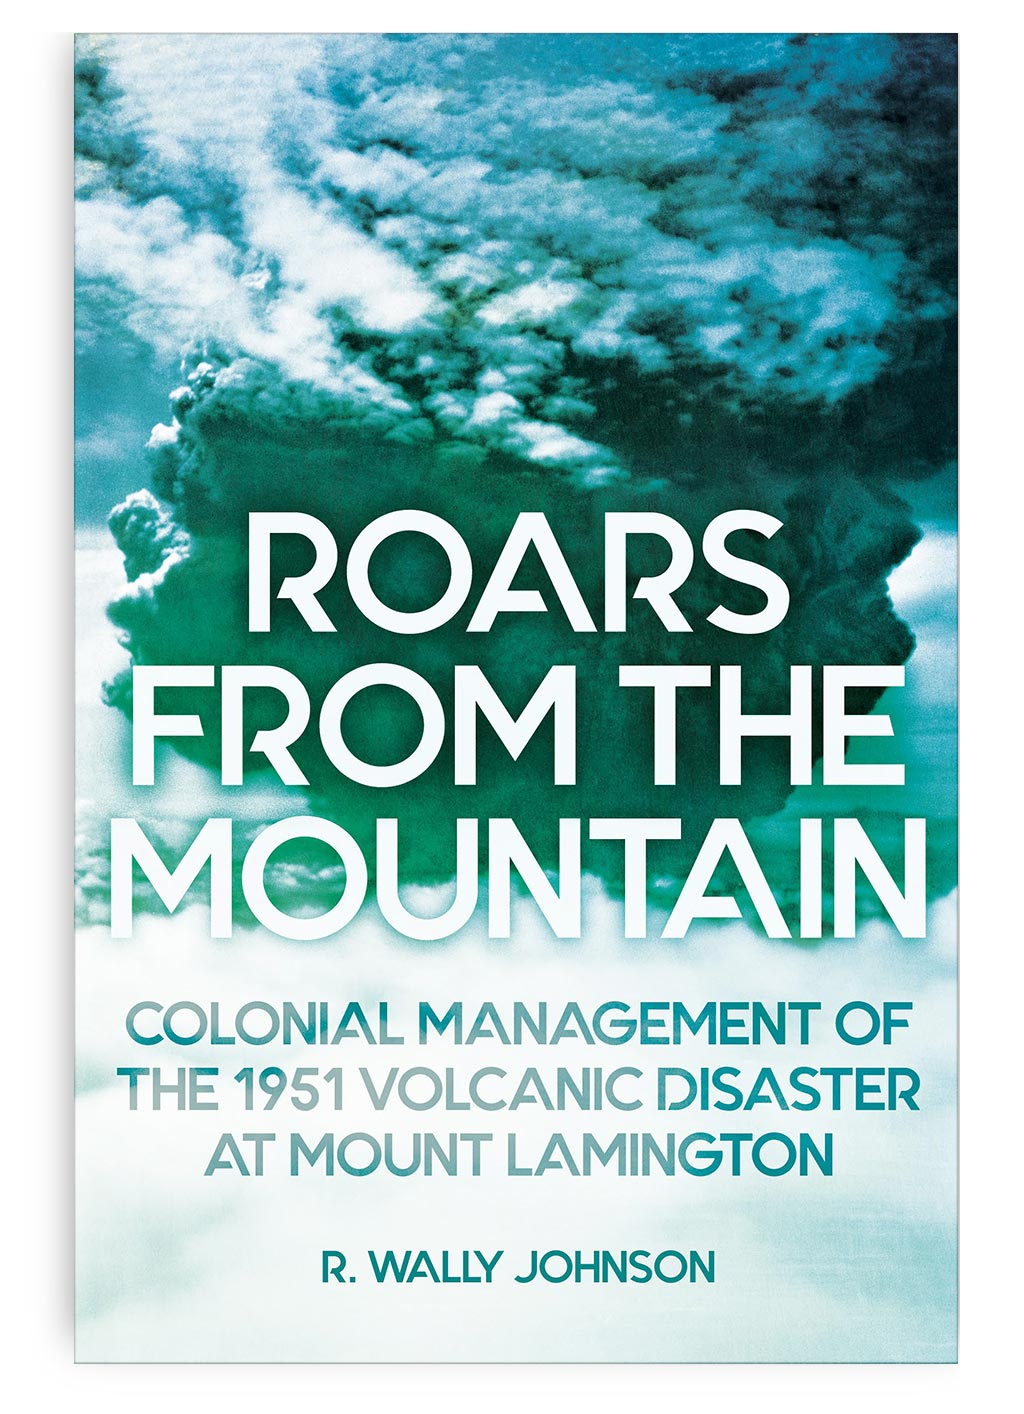 Roars from the Mountain